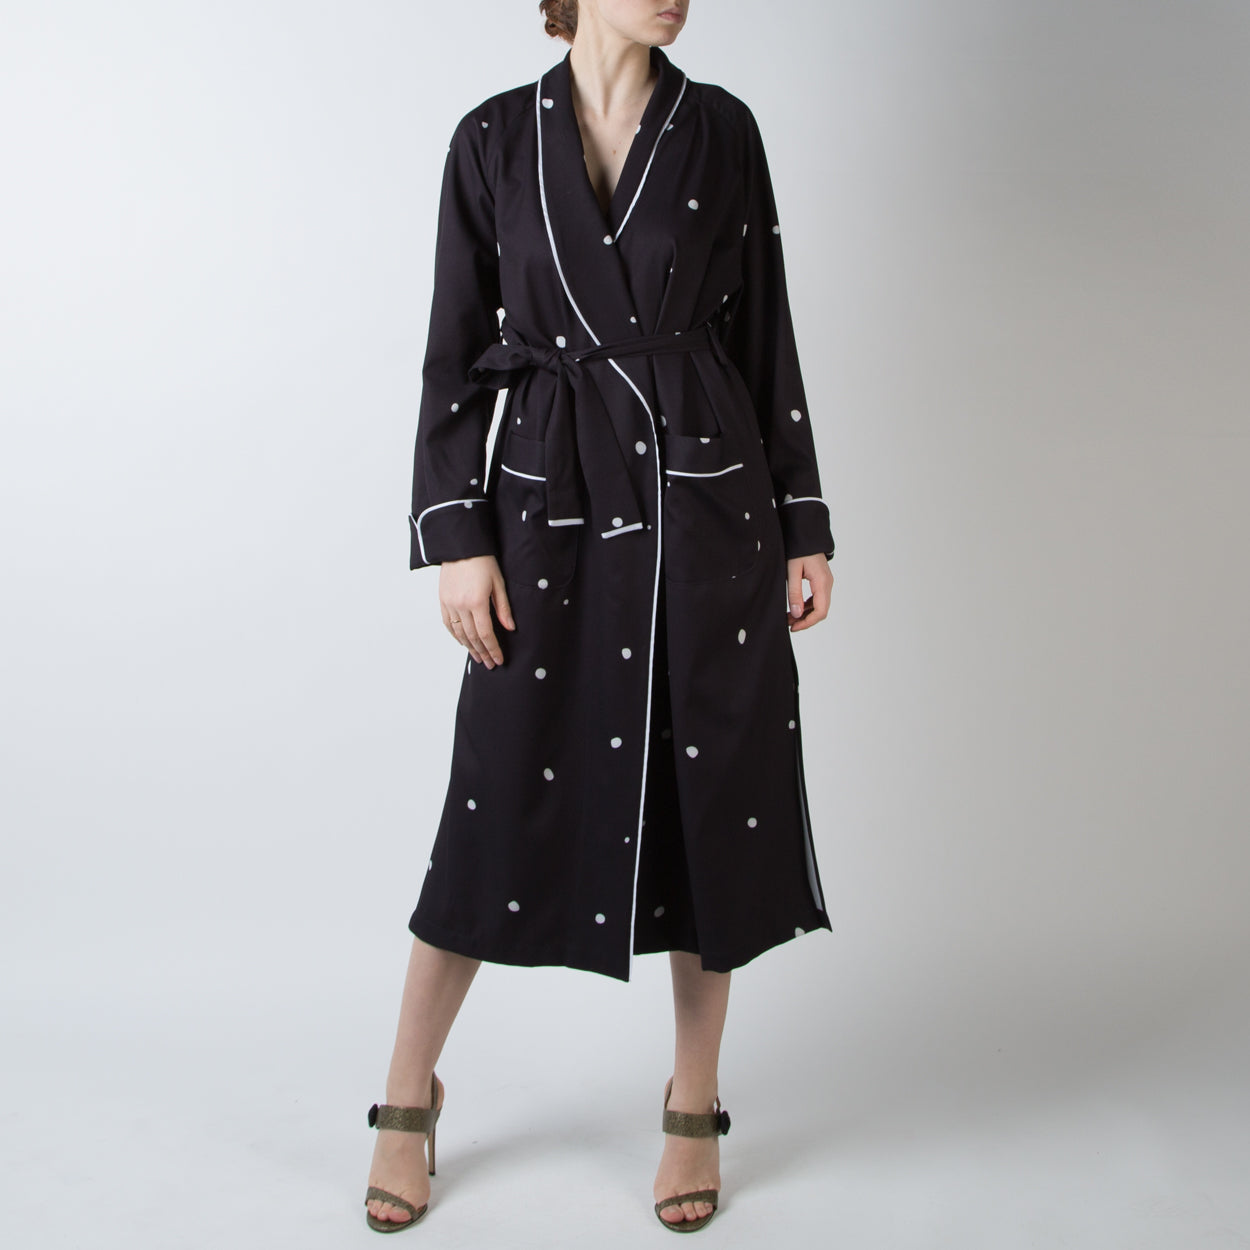 Blur On Coal Robe